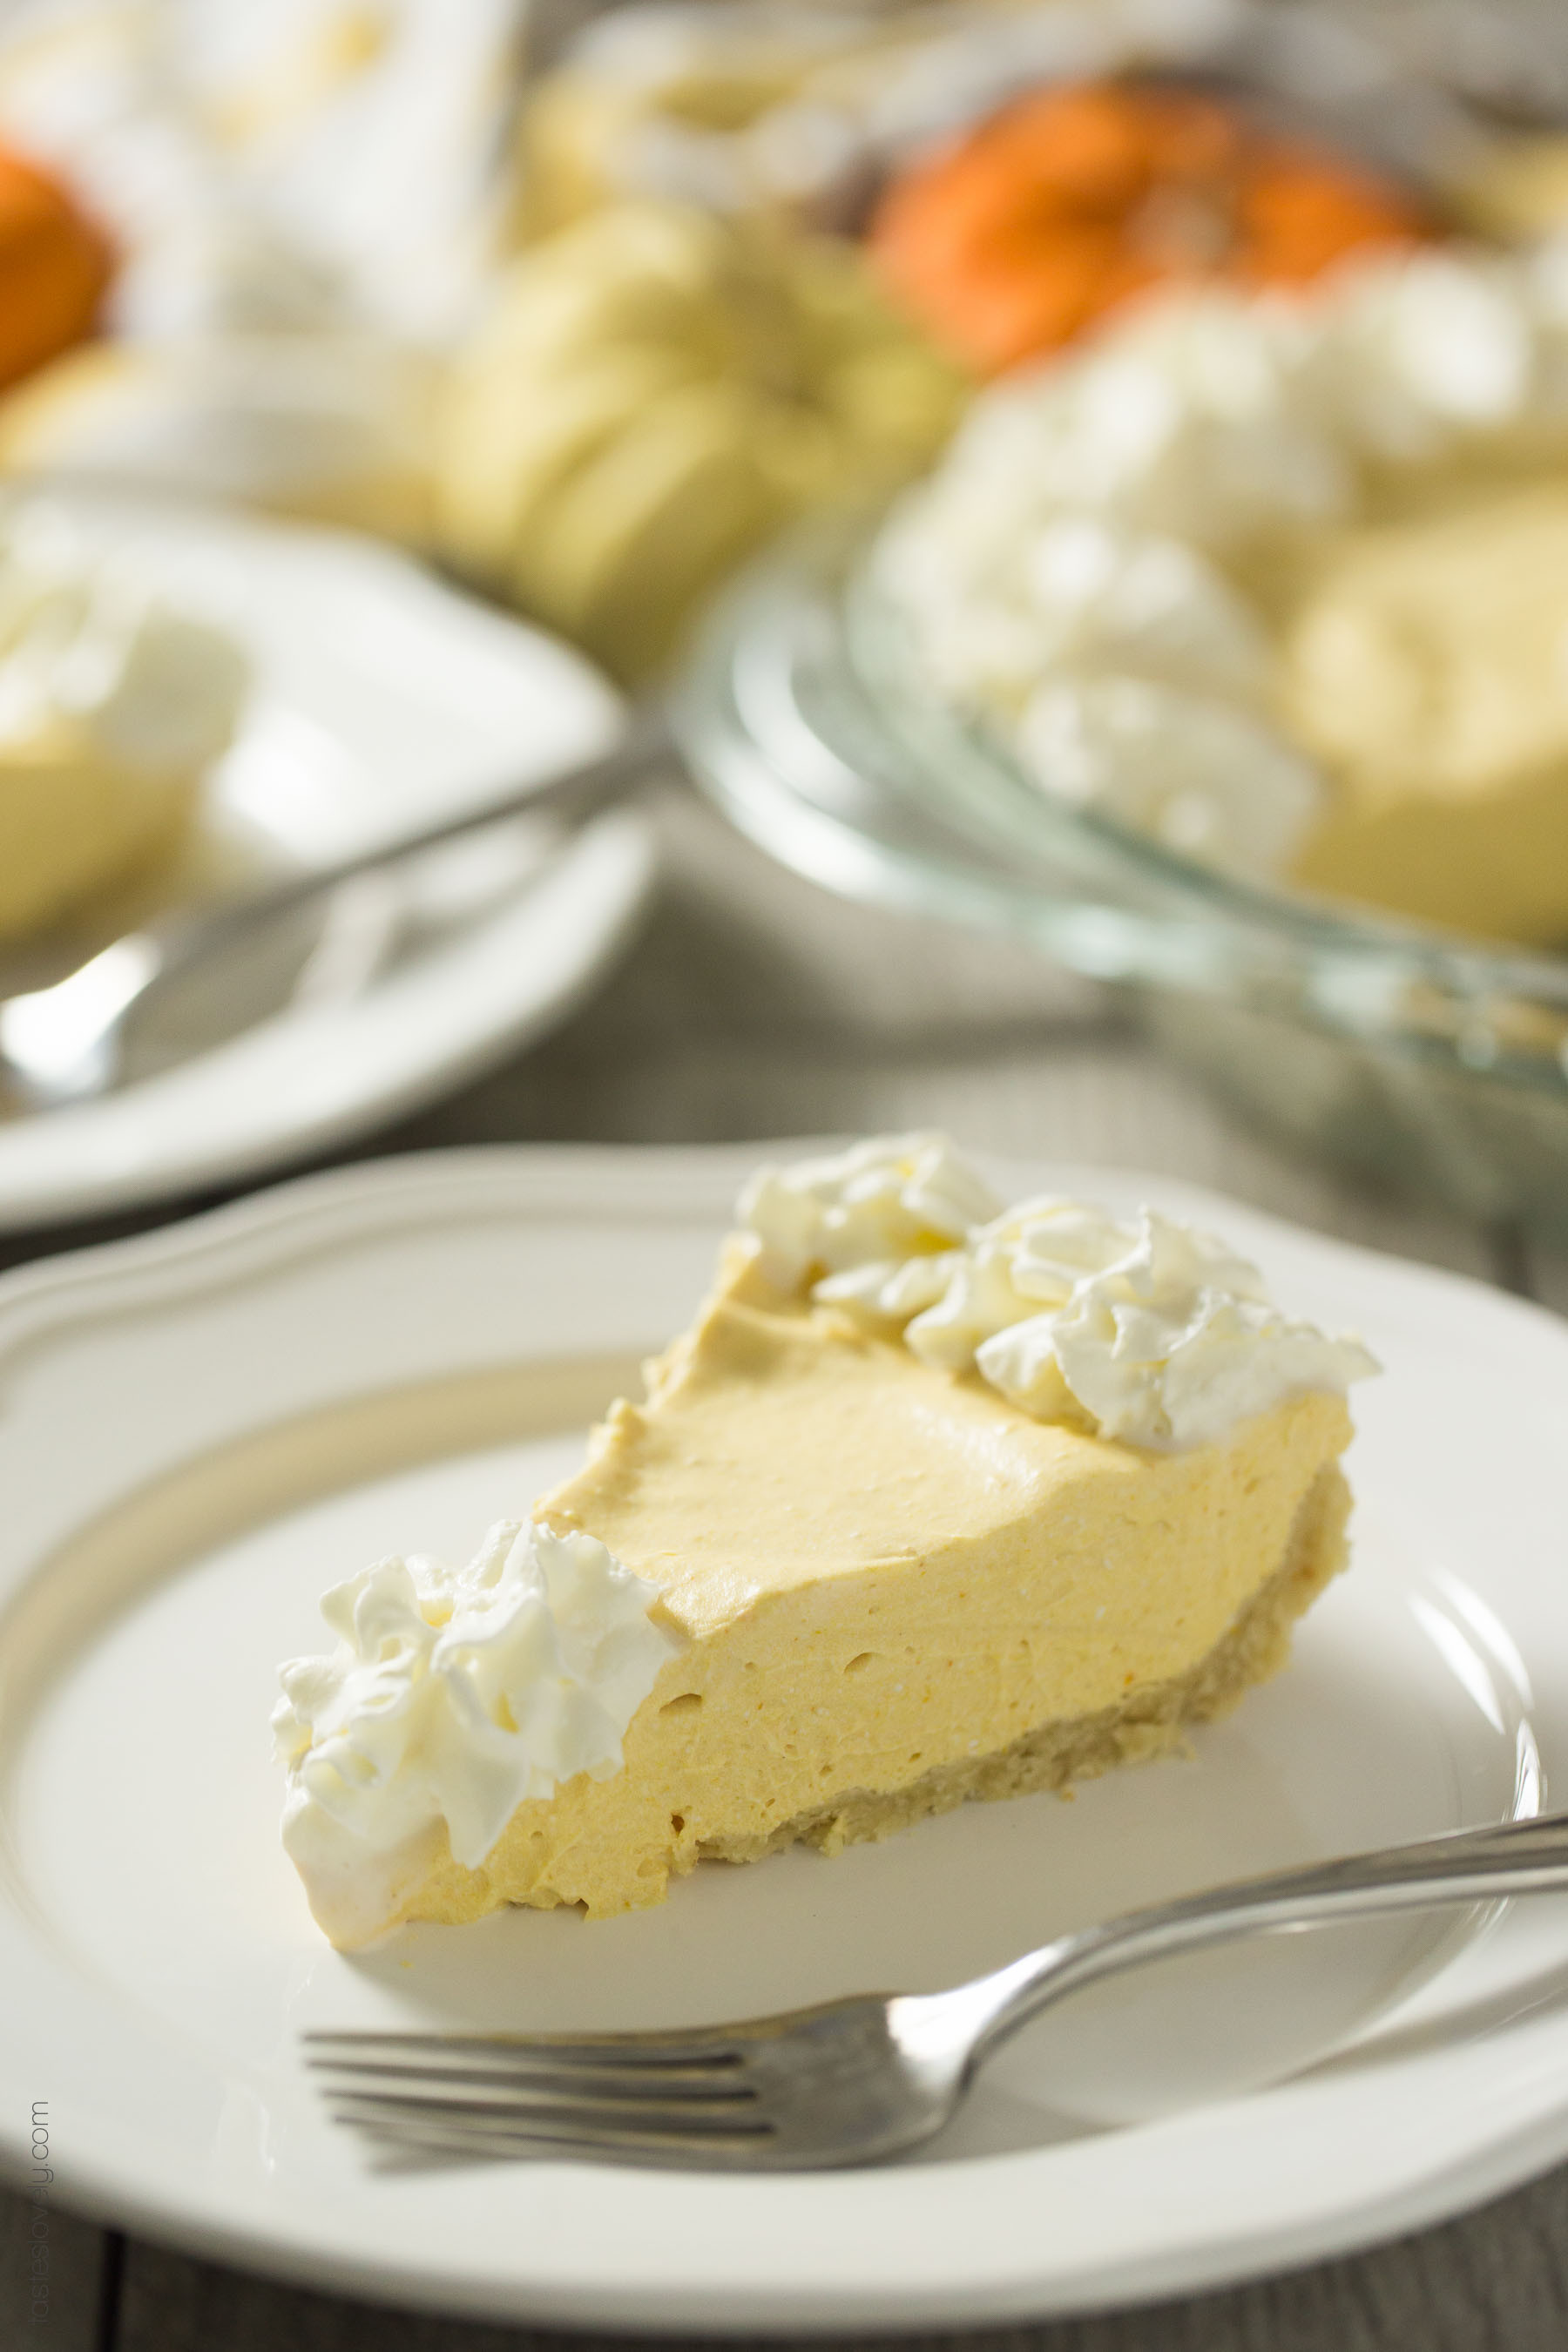 Sugar Free Desserts For Thanksgiving  Paleo Pumpkin Cream Pie — Tastes Lovely